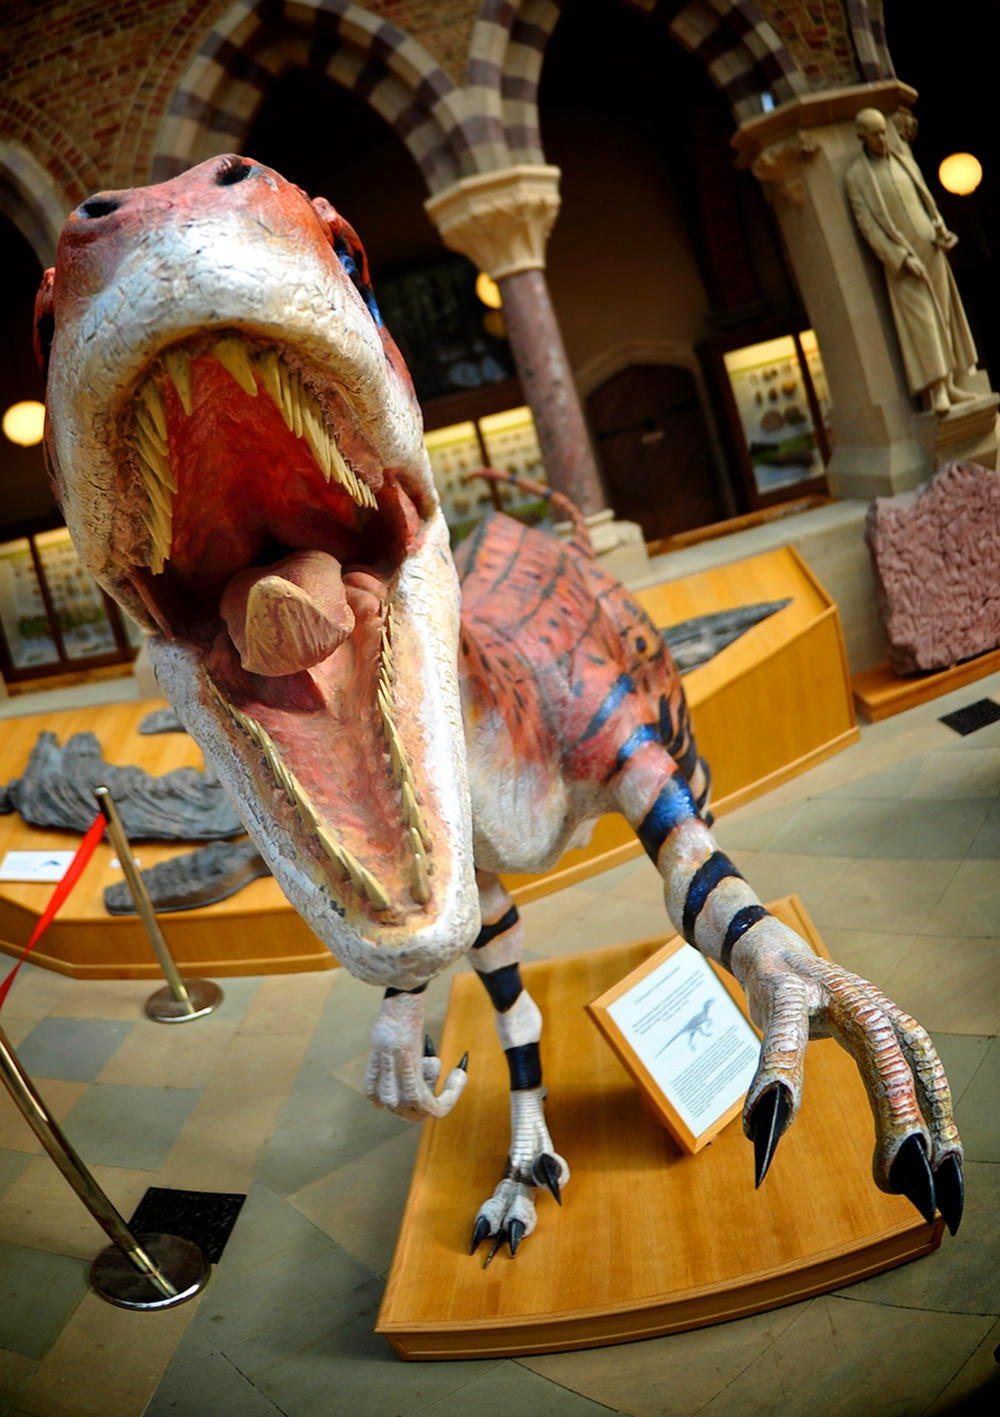 Velociraptor at Oxford's Natural History Museum. Credit IntoTh3Rainbow